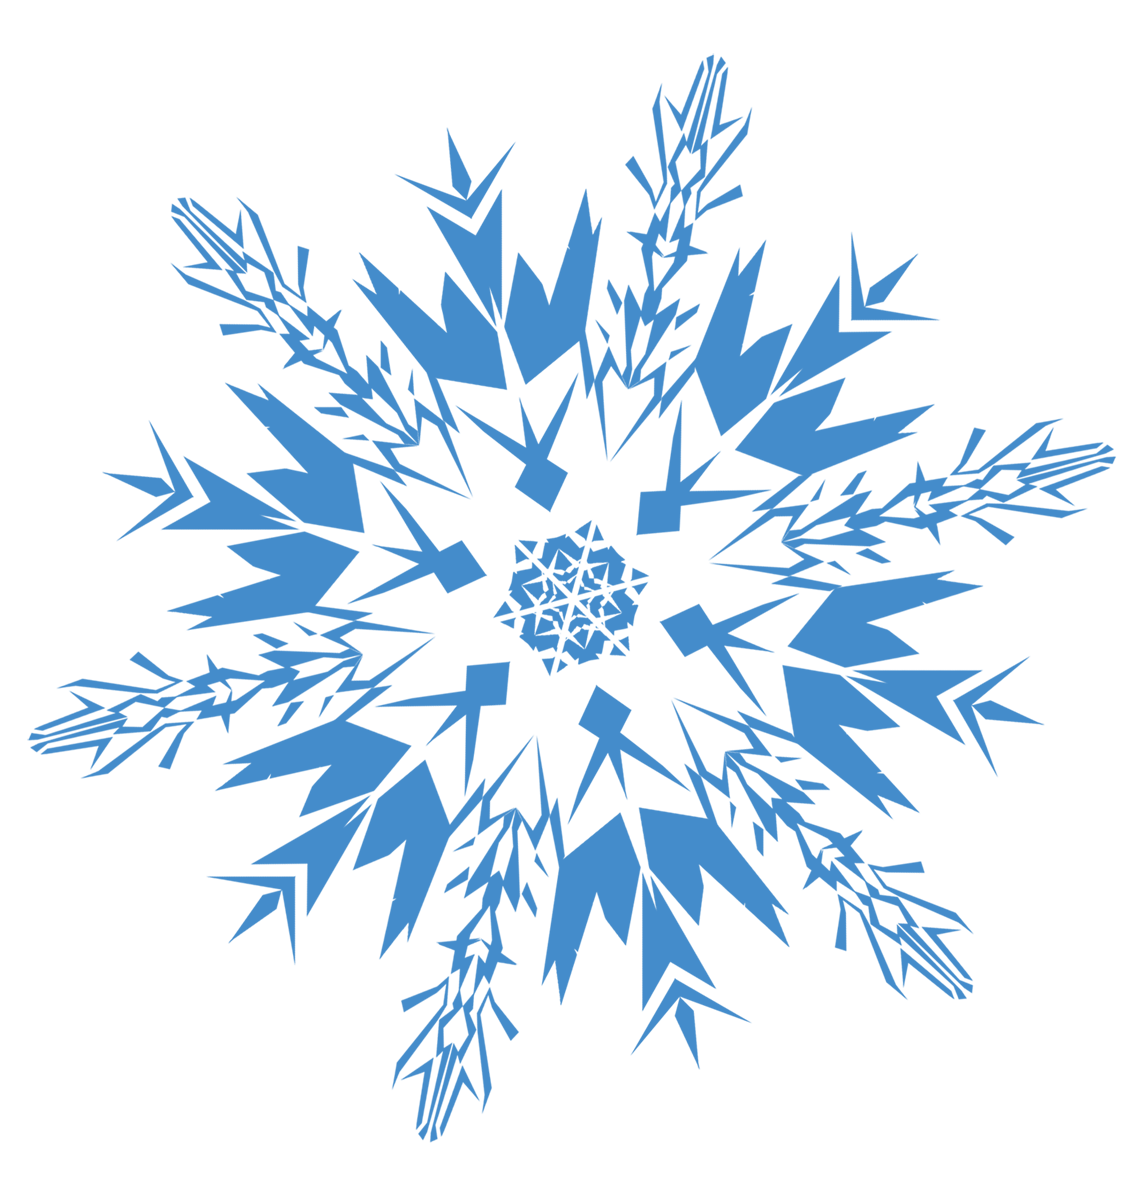 Snowflakes png transparent. Snowflake hd images pluspng